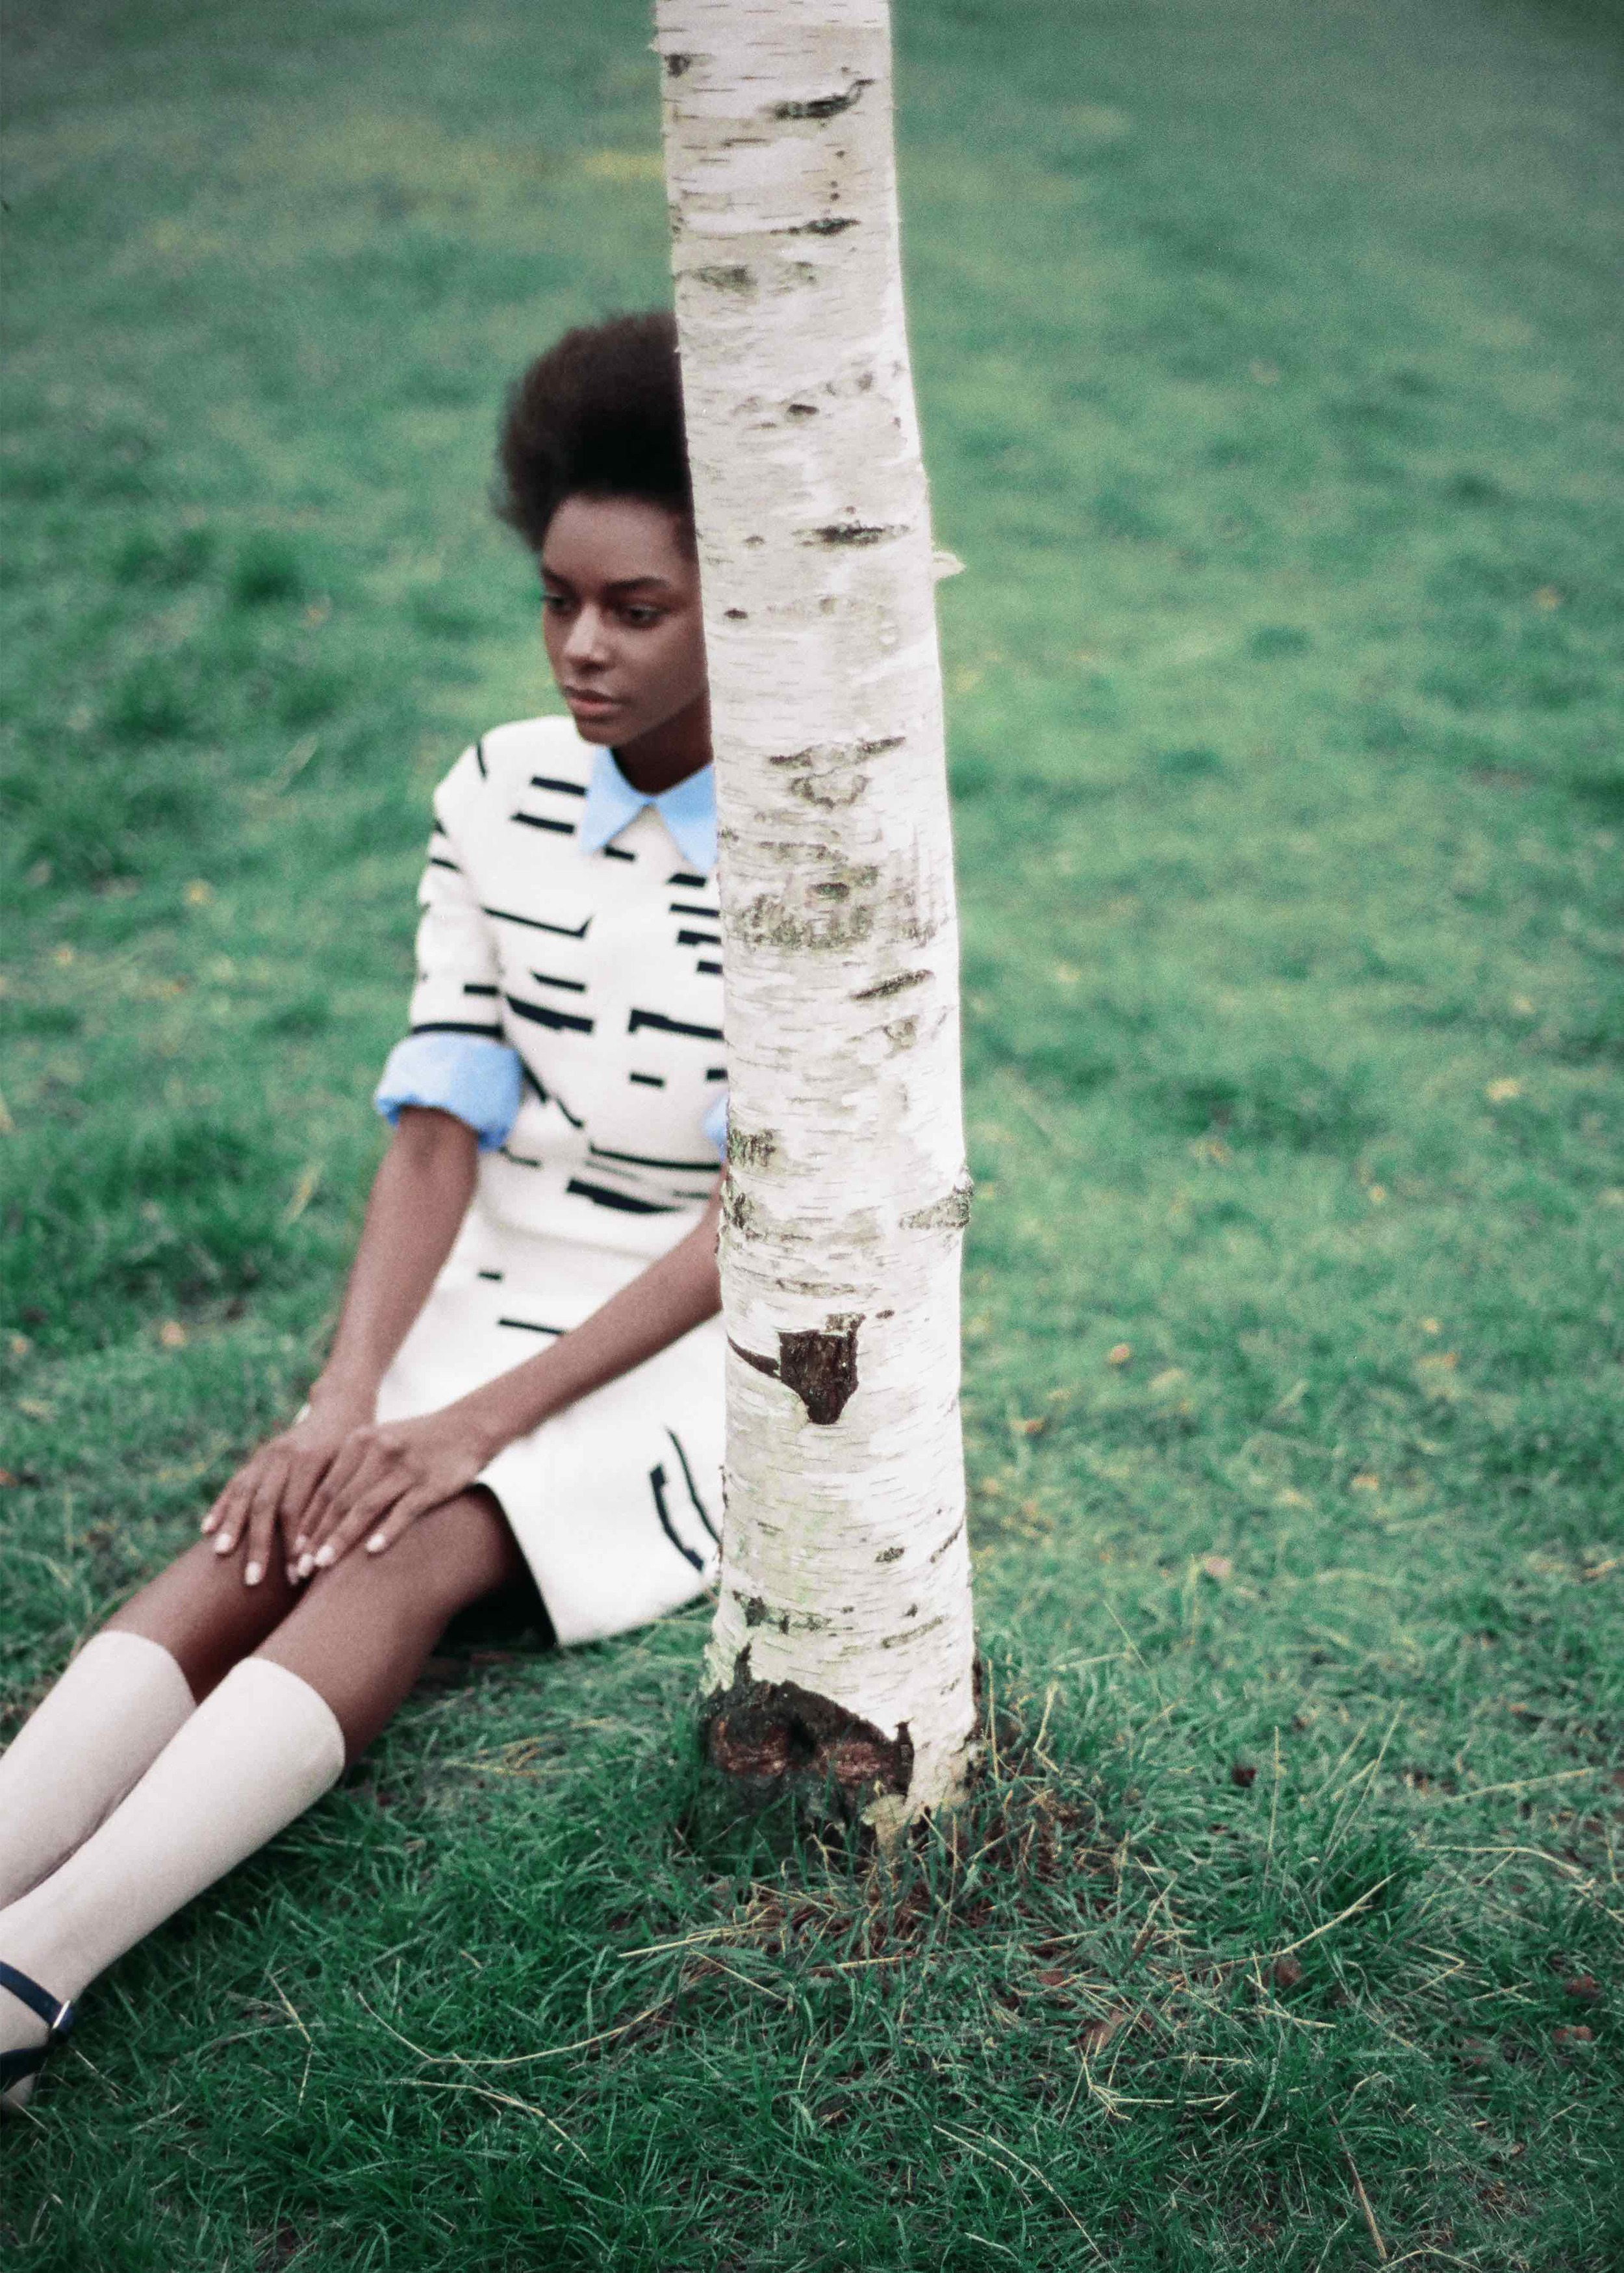 Short sleeved jacquard sweater and skirt, blue cotton poplin shirt, calf leather socks and sandals.